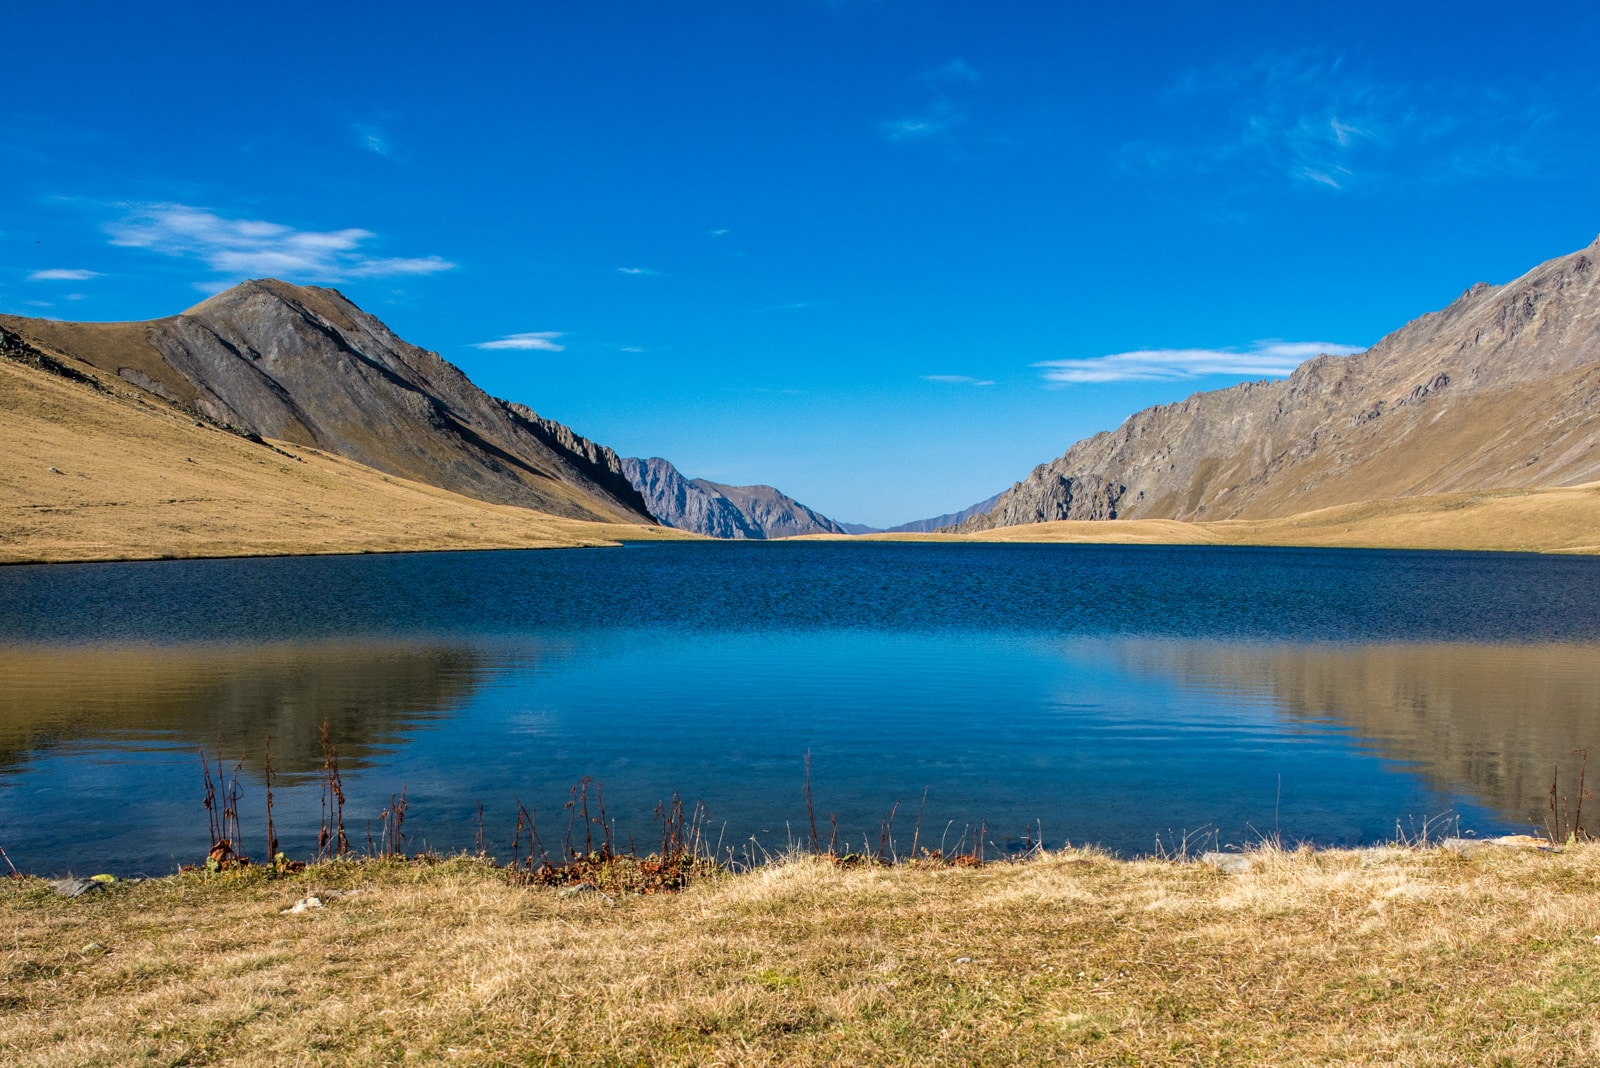 Solo female traveler from Kuwait and Oman - Lake in the Caucasus mountains in Georgia